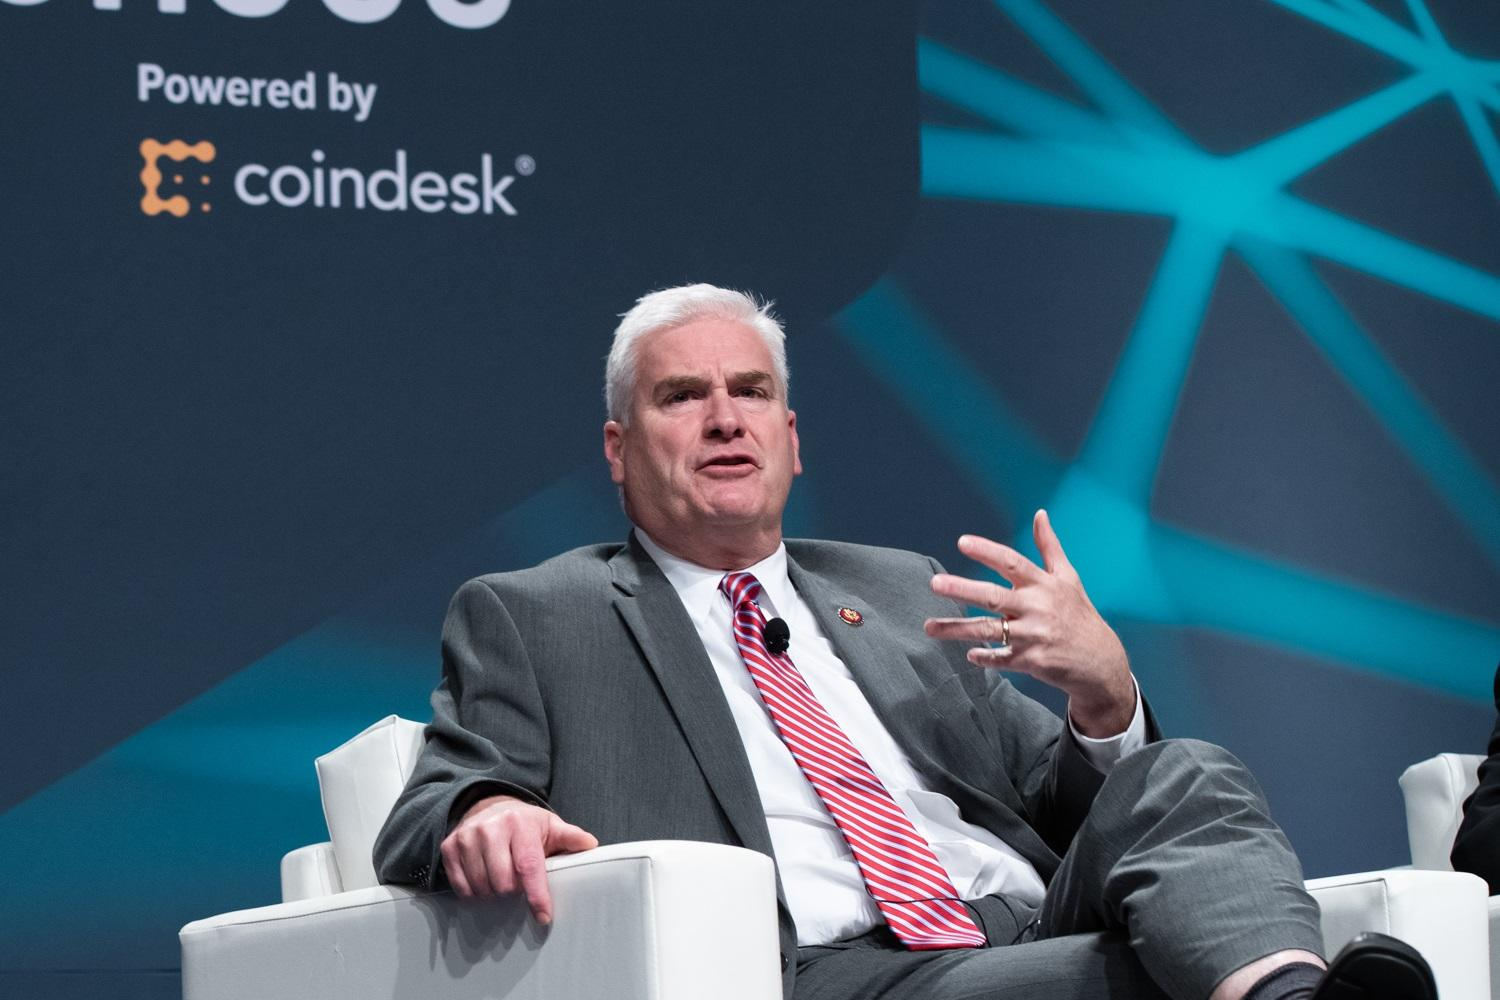 Emmer, Congressional Blockchain Group Ask IRS to Revise Guidance on Charitable Crypto Donations